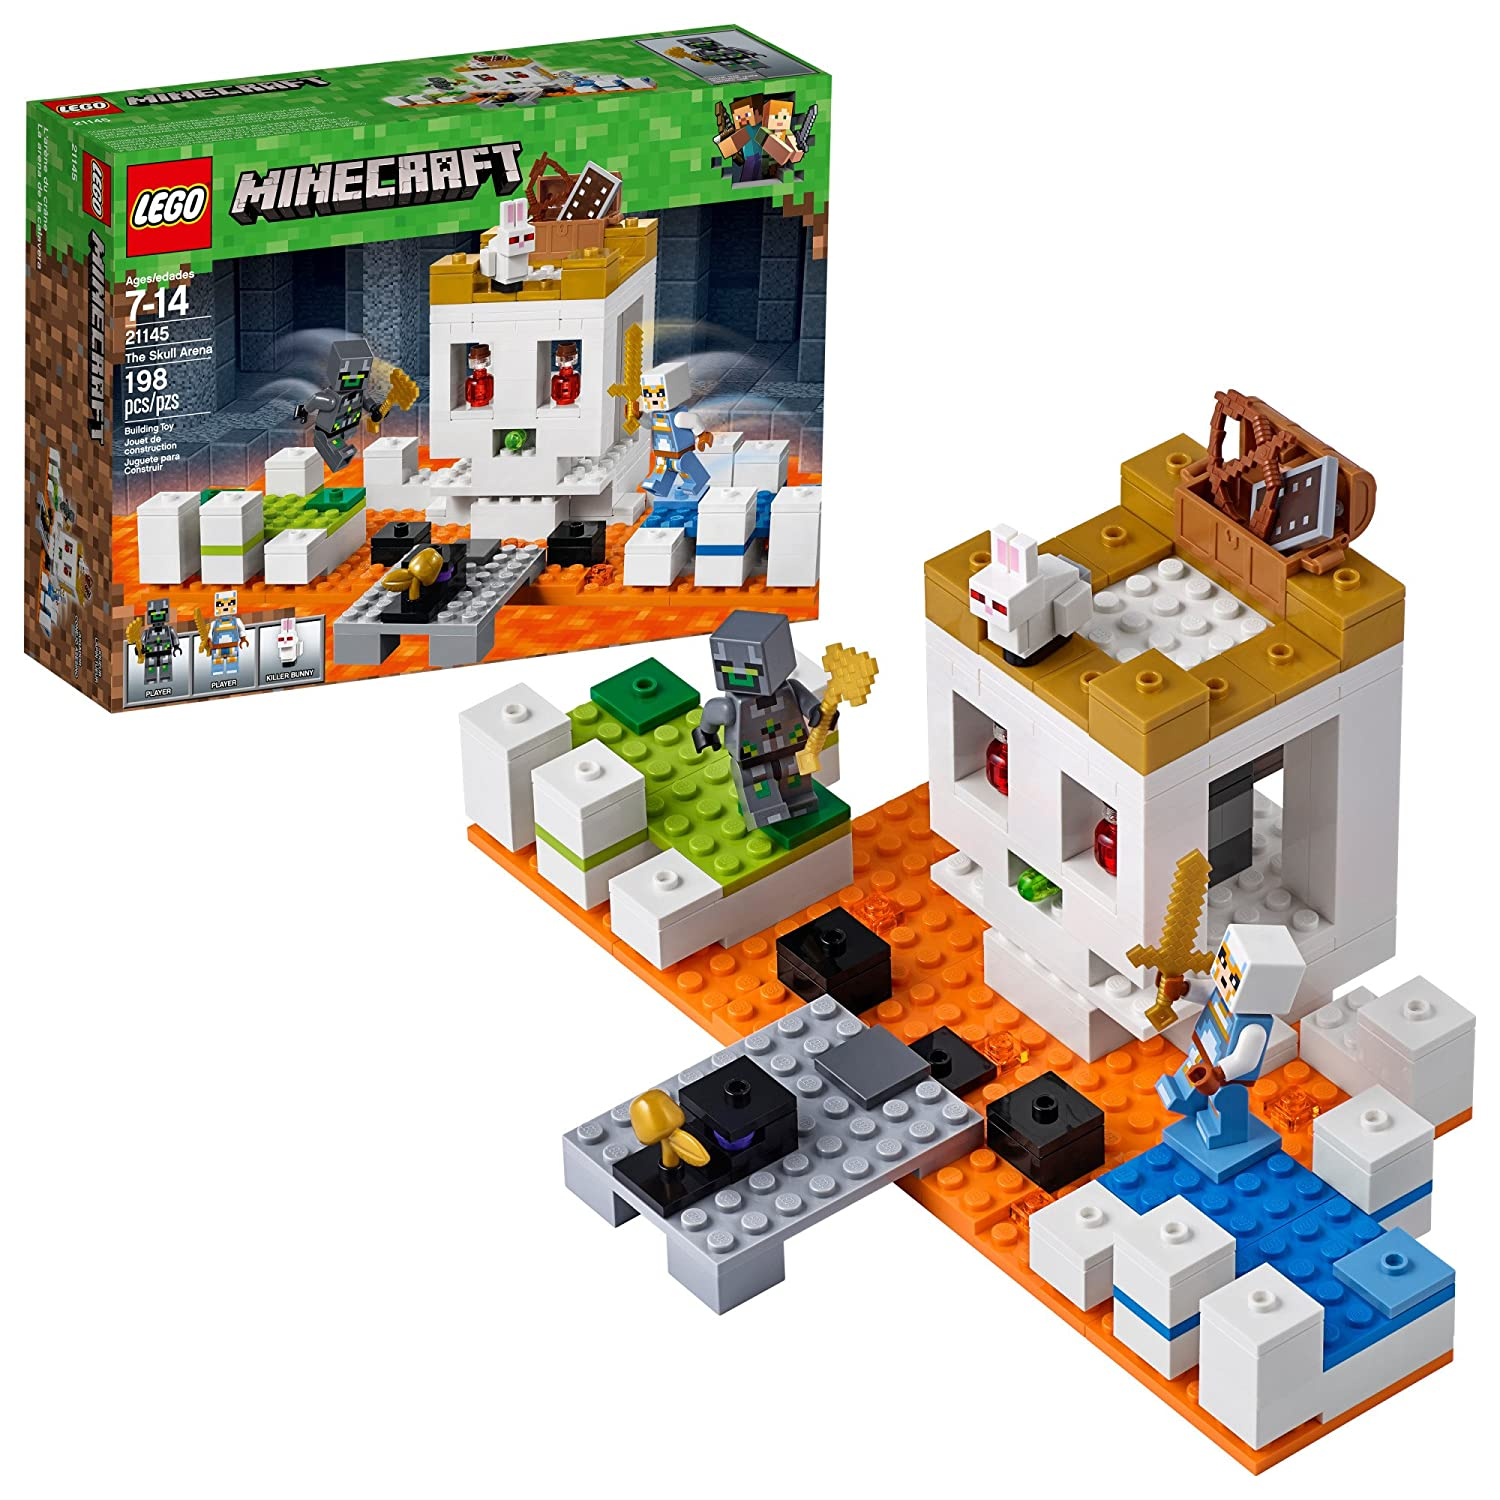 LEGO Minecraft The Skull Arena 21145 Building Kit (198 Piece) 6212504